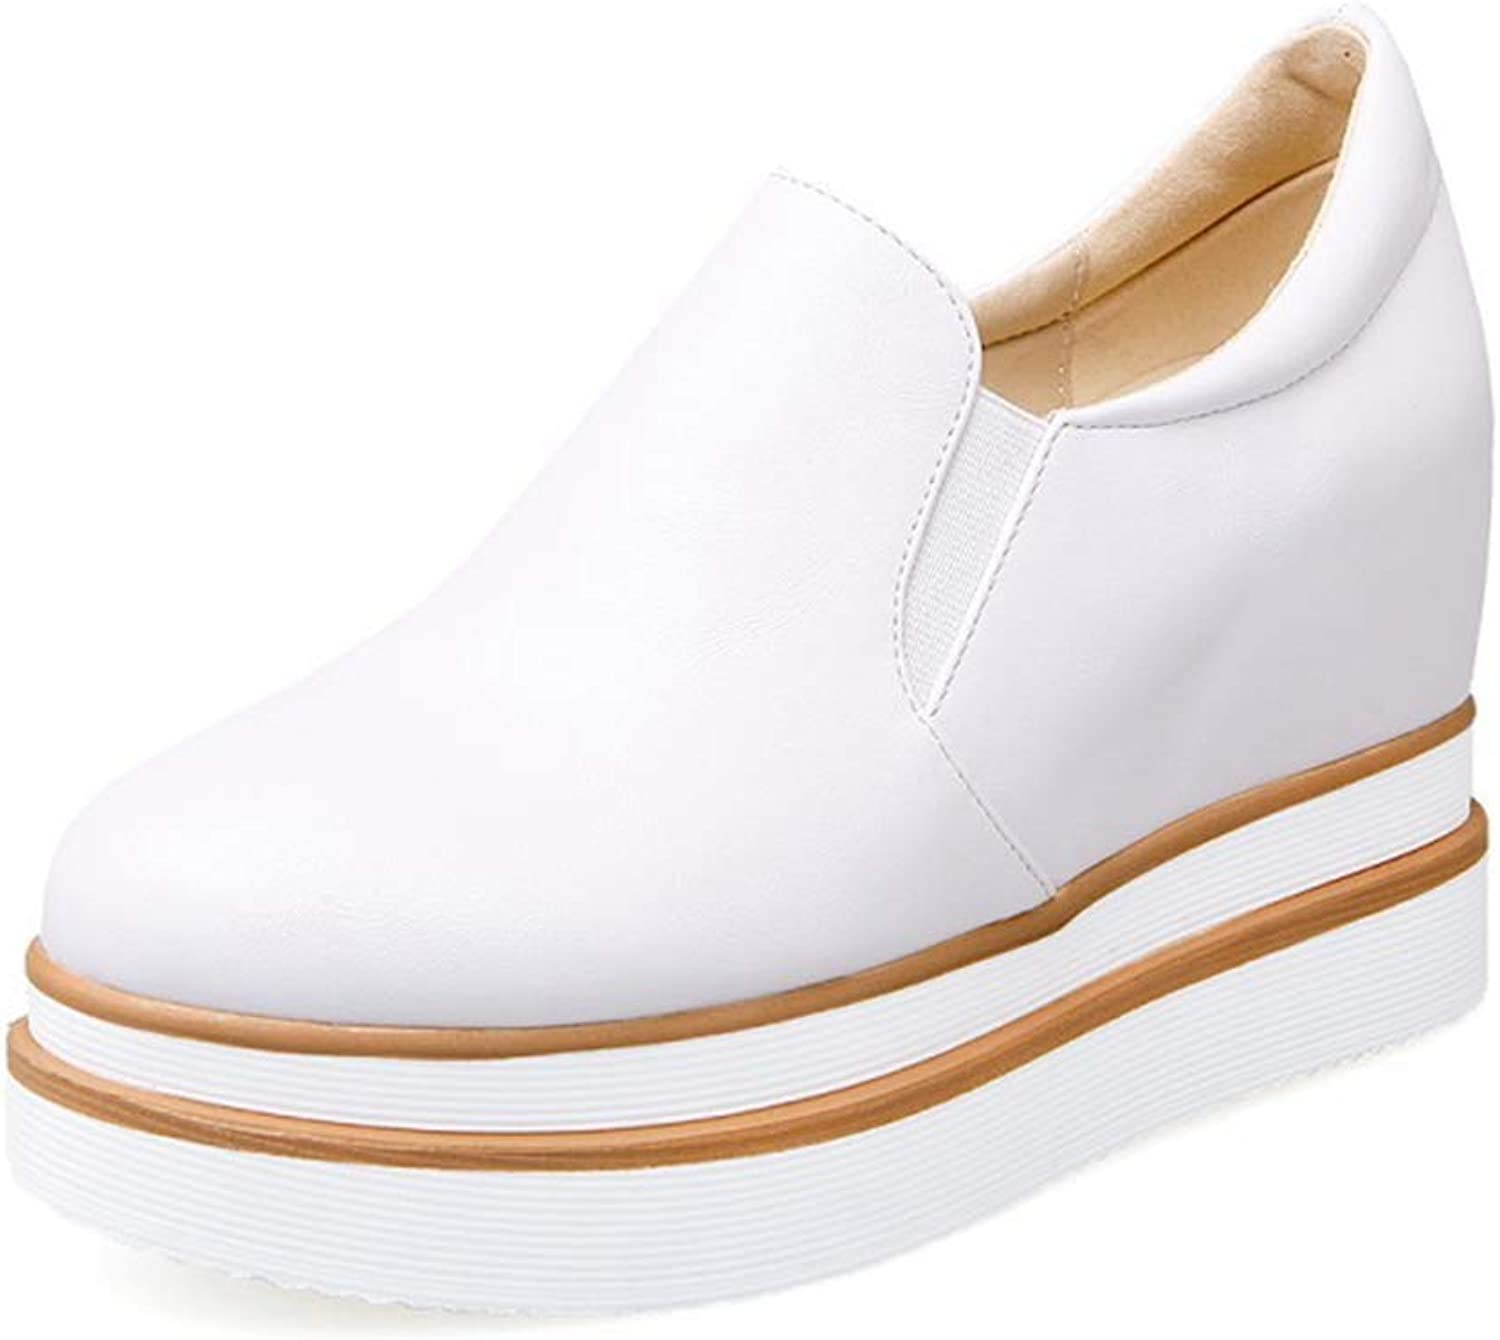 Beautiful - Fashion Women Fashion Low Top Flat Wedge Platform Sneakers Increased Height Slip On Casual Sports shoes